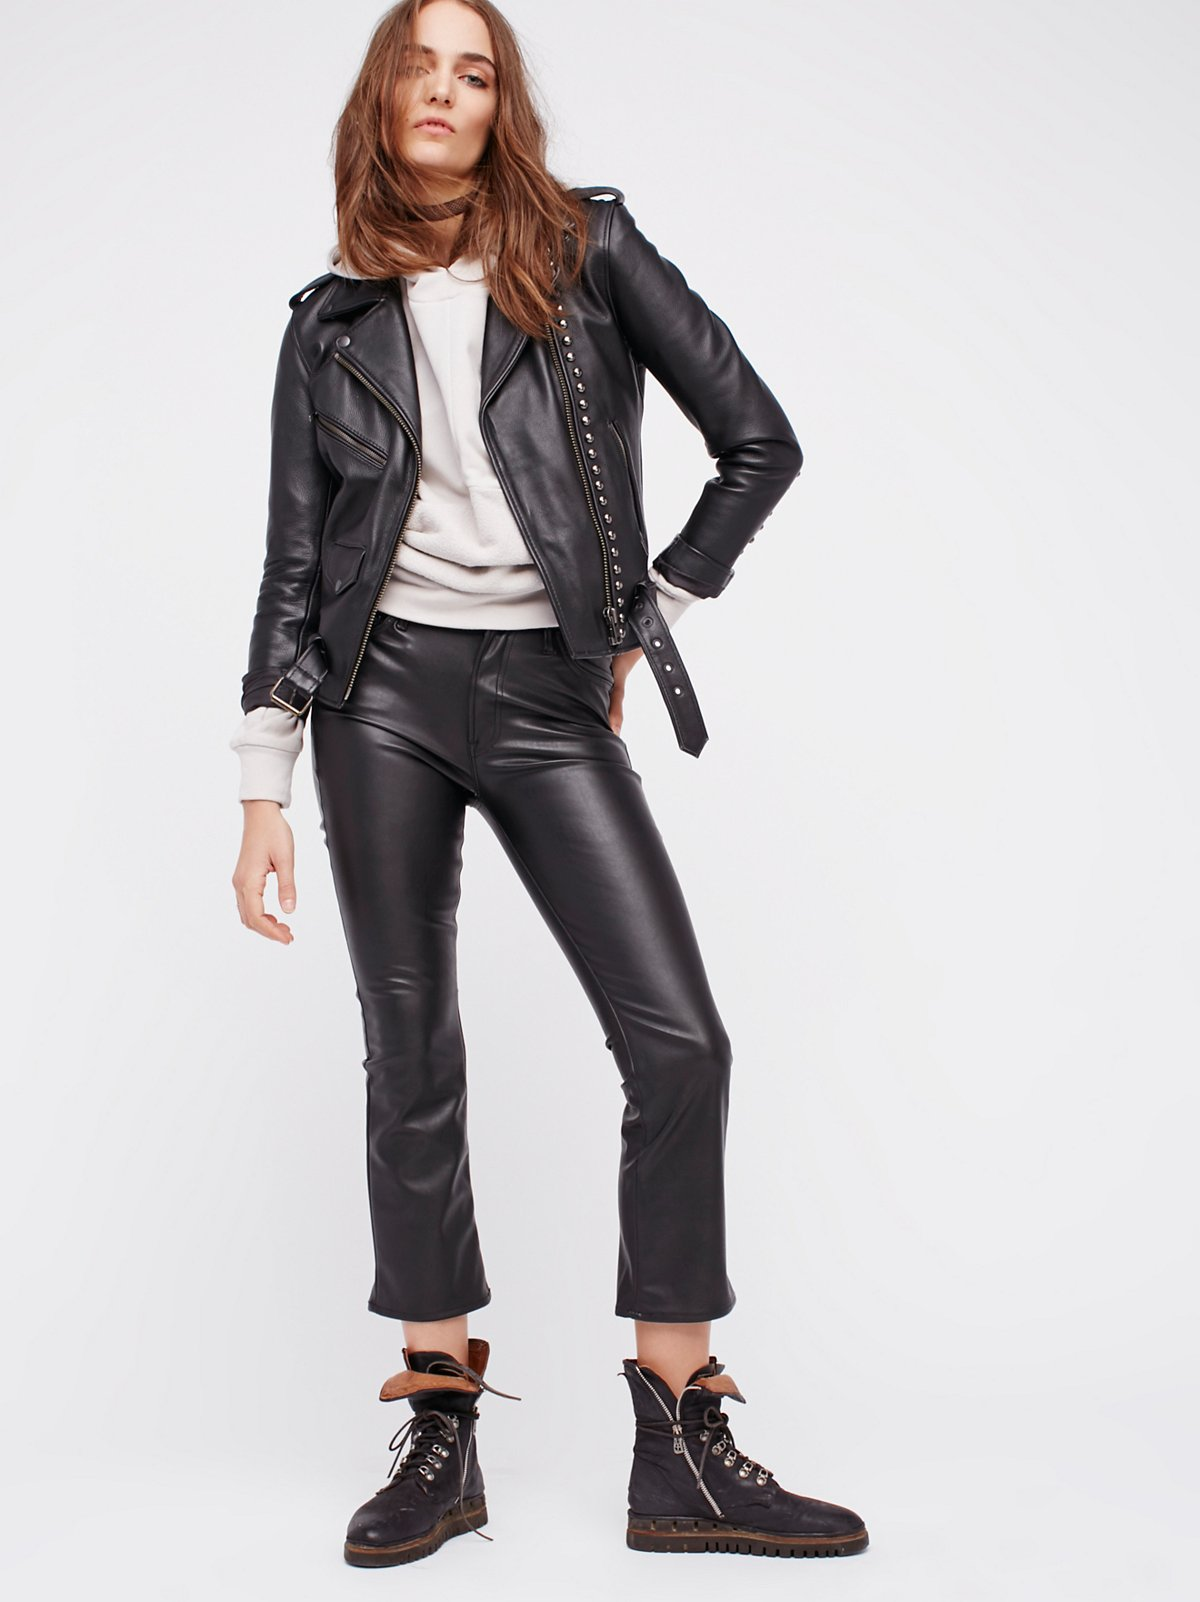 The Insider Vegan Leather Crop